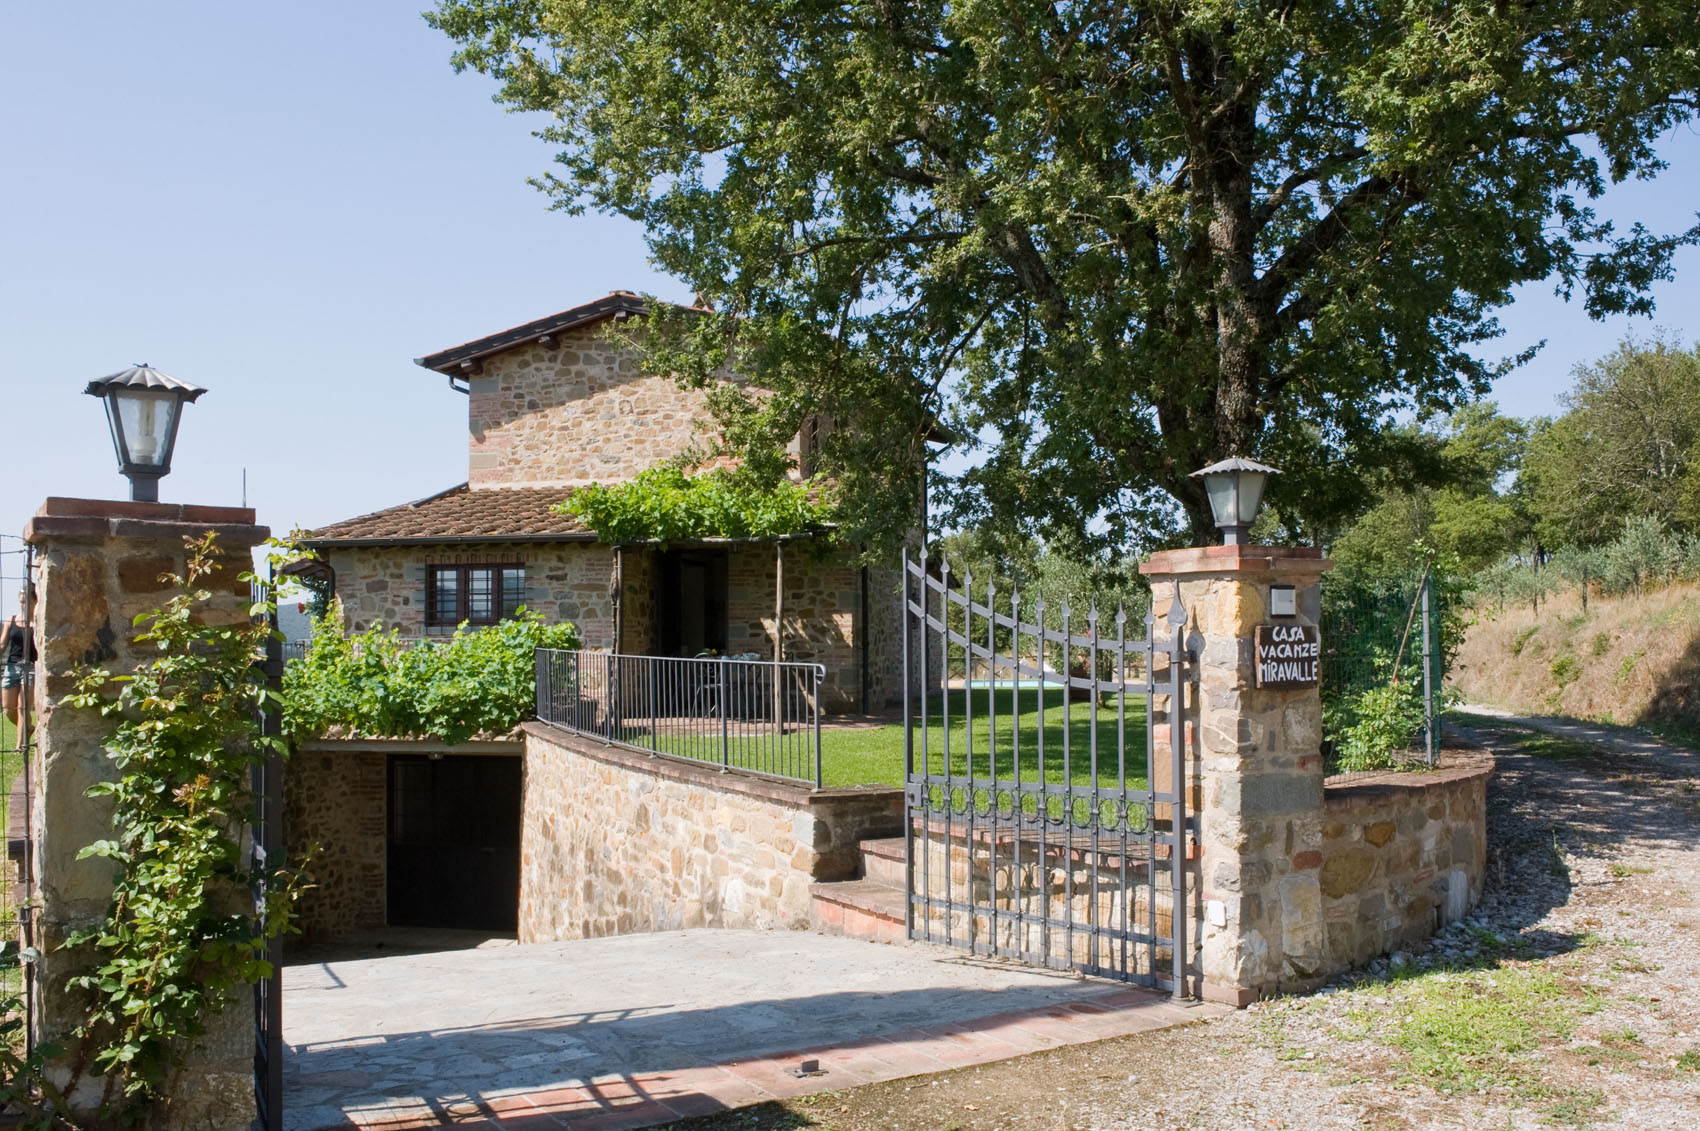 miravalle, Incrociata, Agriturismo Incrociata, Tuscan Agriturismo, Farmhouse suites, Holiday apartments Tuscany, Tuscany accommodation, Tuscan holiday home, Casa vacanza